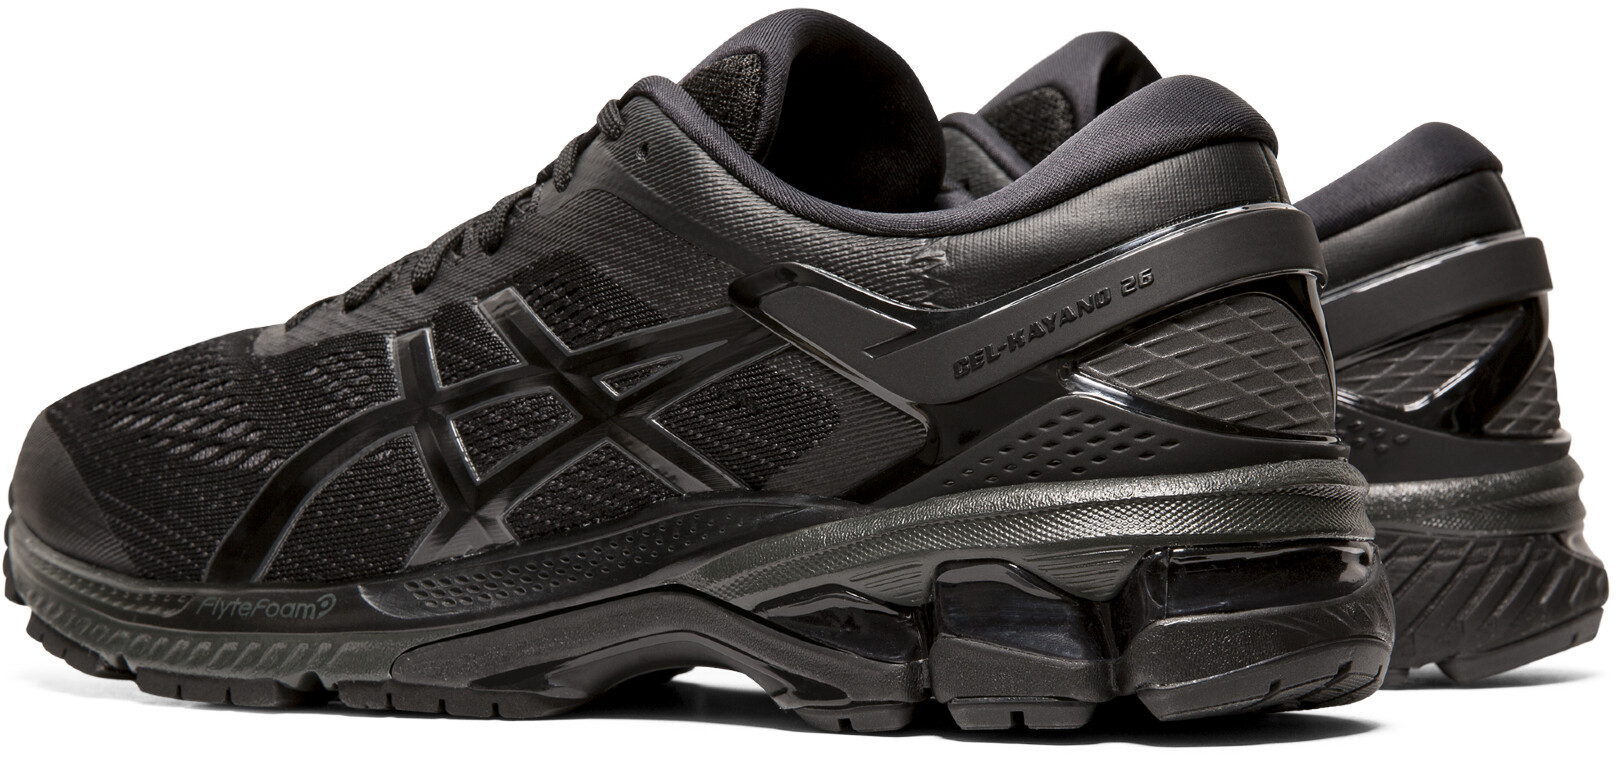 asics Gel Kayano 26 Shoes Men blackblack